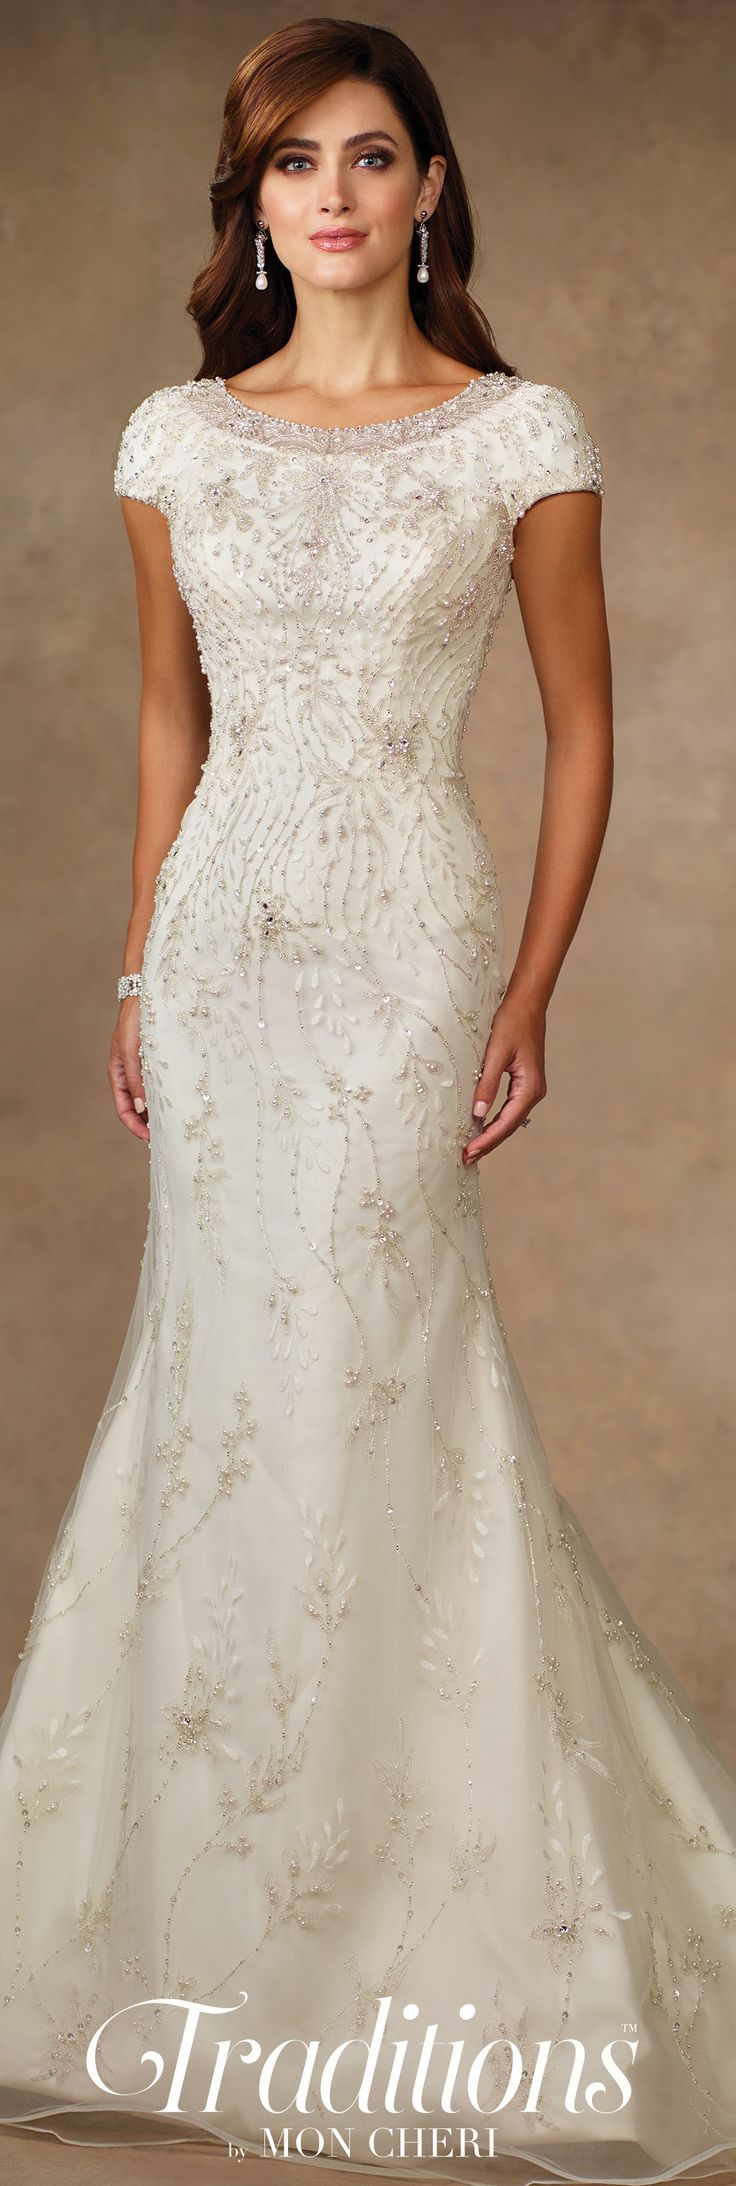 Simple dress for civil wedding  Traditions by Mon Cheri Spring  Wedding Gown Collection  Style